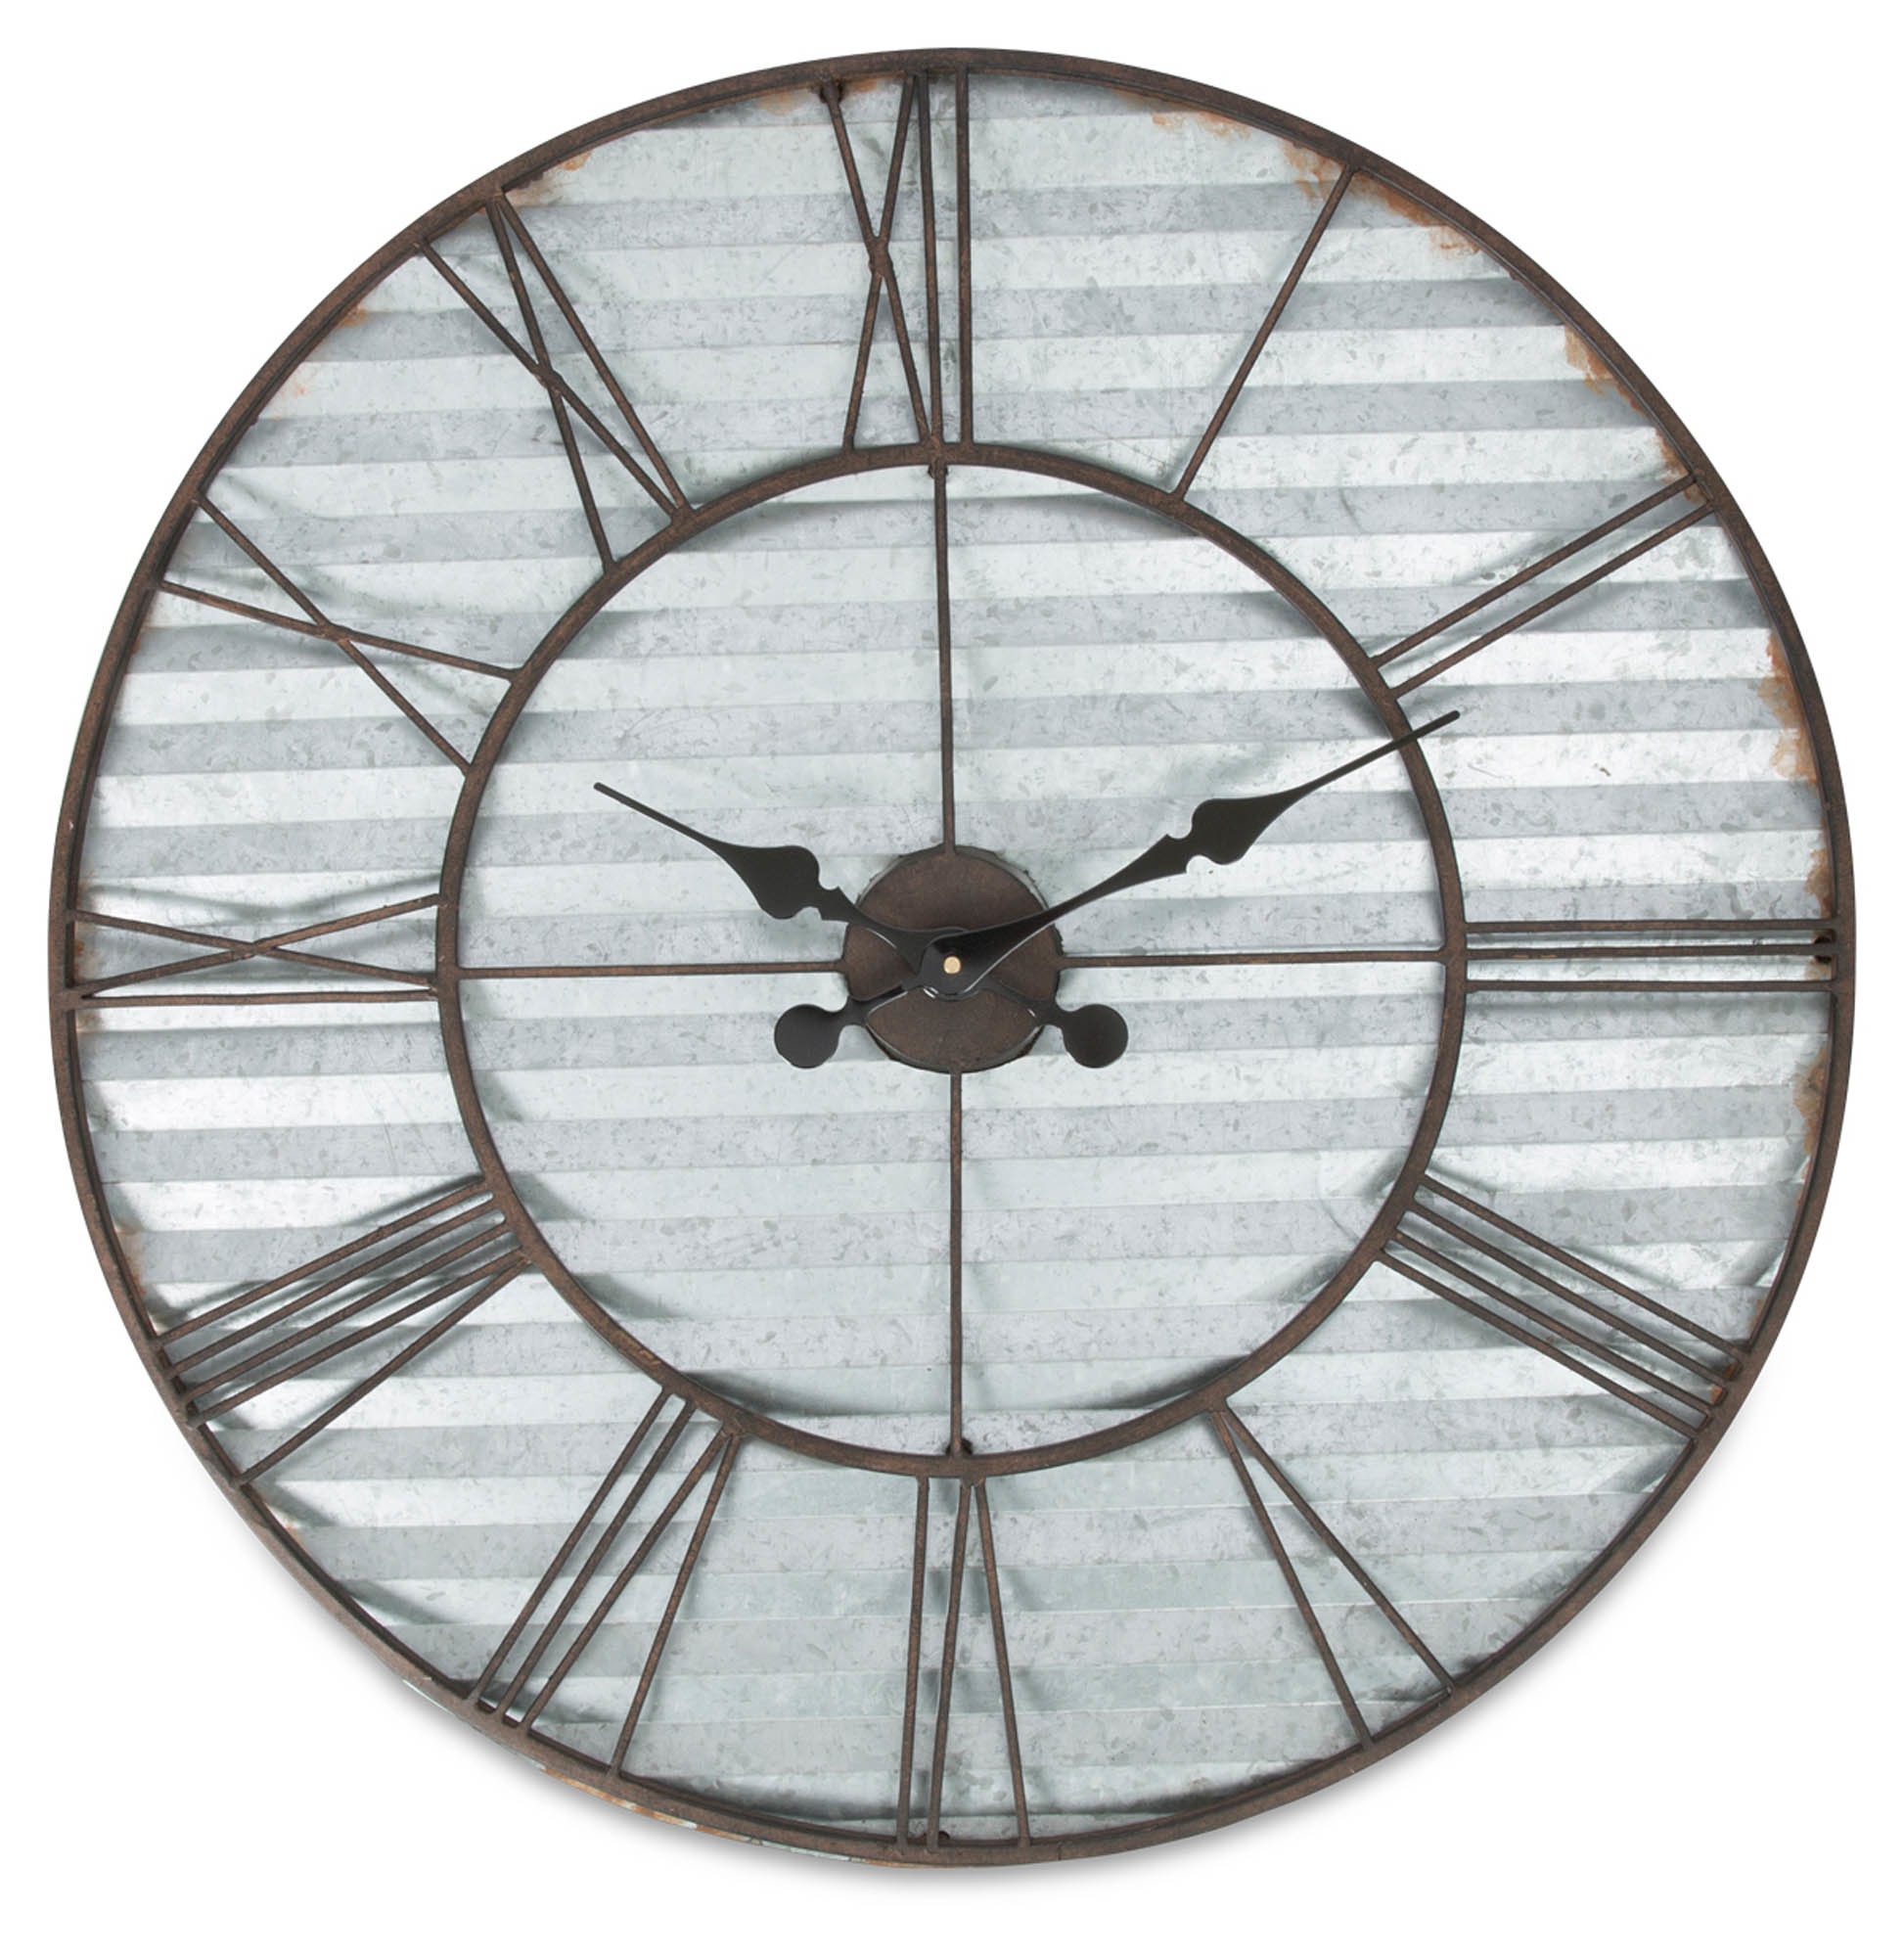 sku cas1425 industrial sheet metal wall clock is also sometimes listed under the following numbers mx07